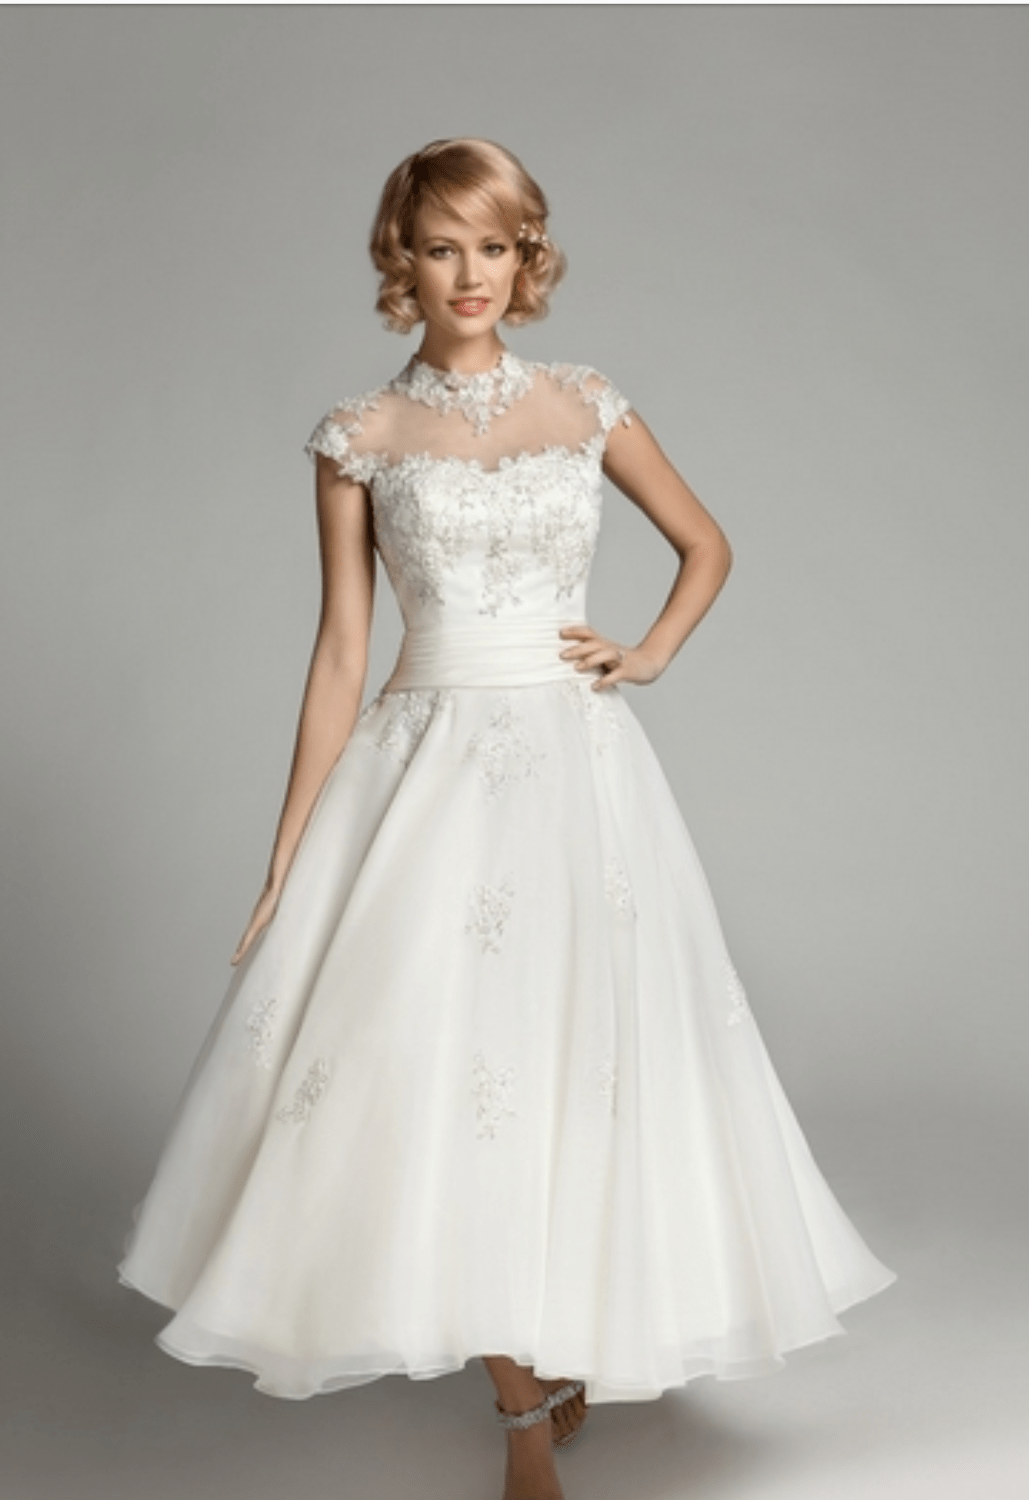 Stunning ballet length mark lesley dress sell my wedding for Sell wedding dress for free